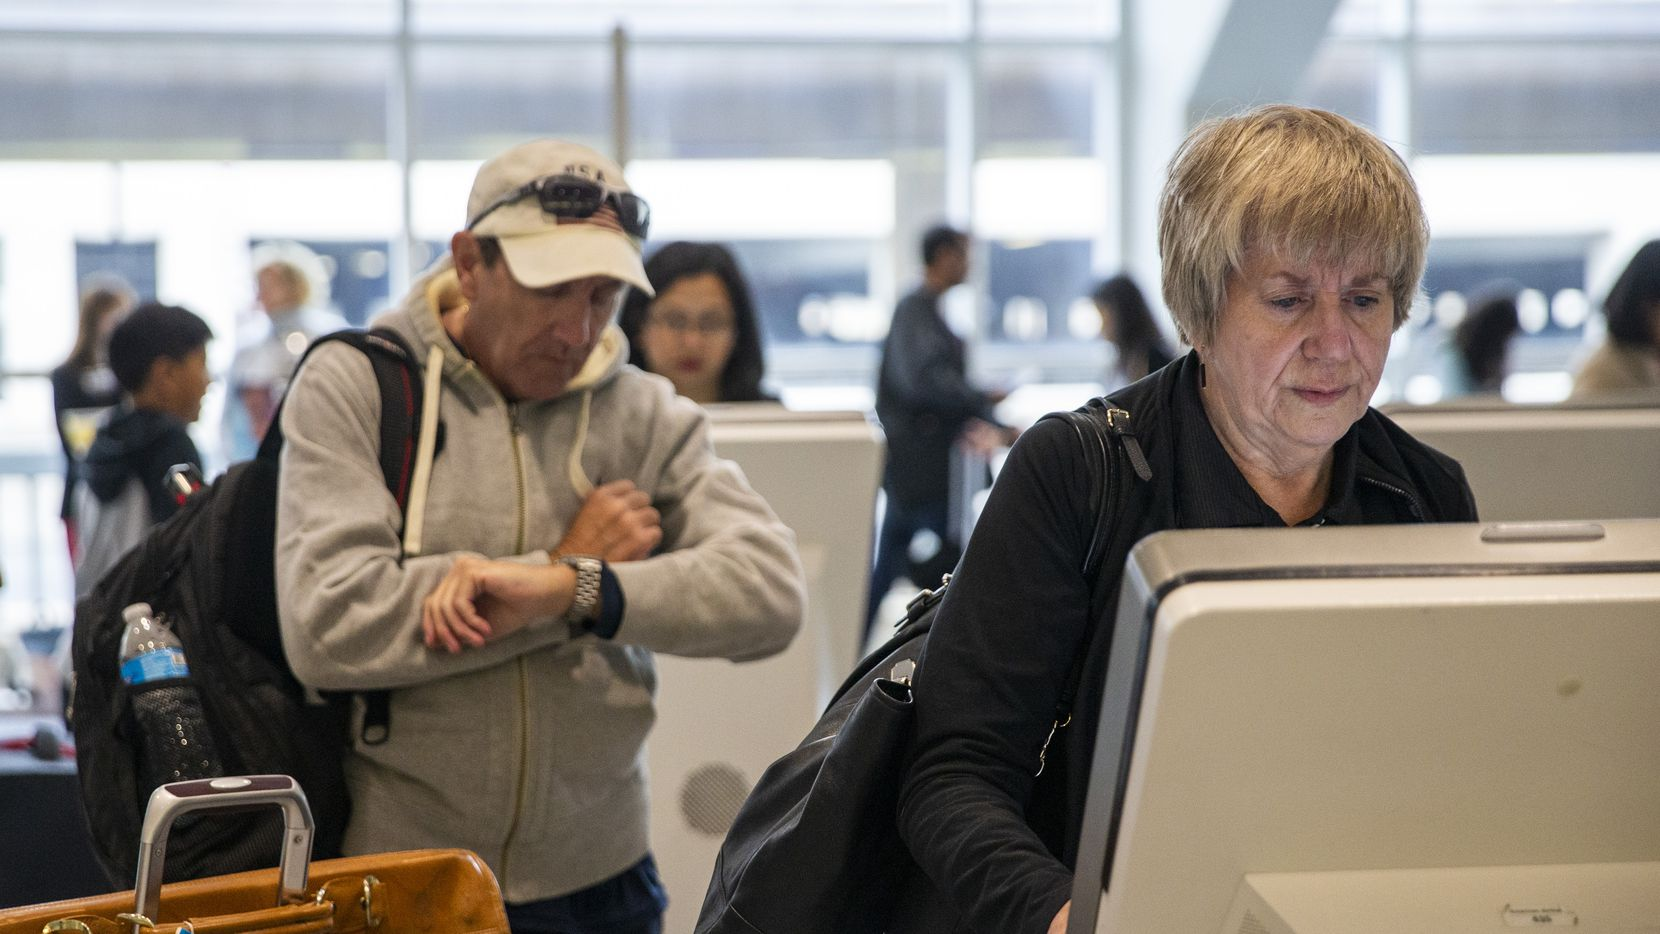 Kelcie Hibbs (right), from Fort Worth, Texas, utilizes an American Airlines electronic kiosk in the ticketing area of Terminal A at DFW International Airport in Irving, Texas, on Friday, November 22, 2019. American Airlines is making major changes to its apps and websites, including a system that lets customers make their own bids when a flight is overcrowded. (Lynda M. Gonzalez/The Dallas Morning News)